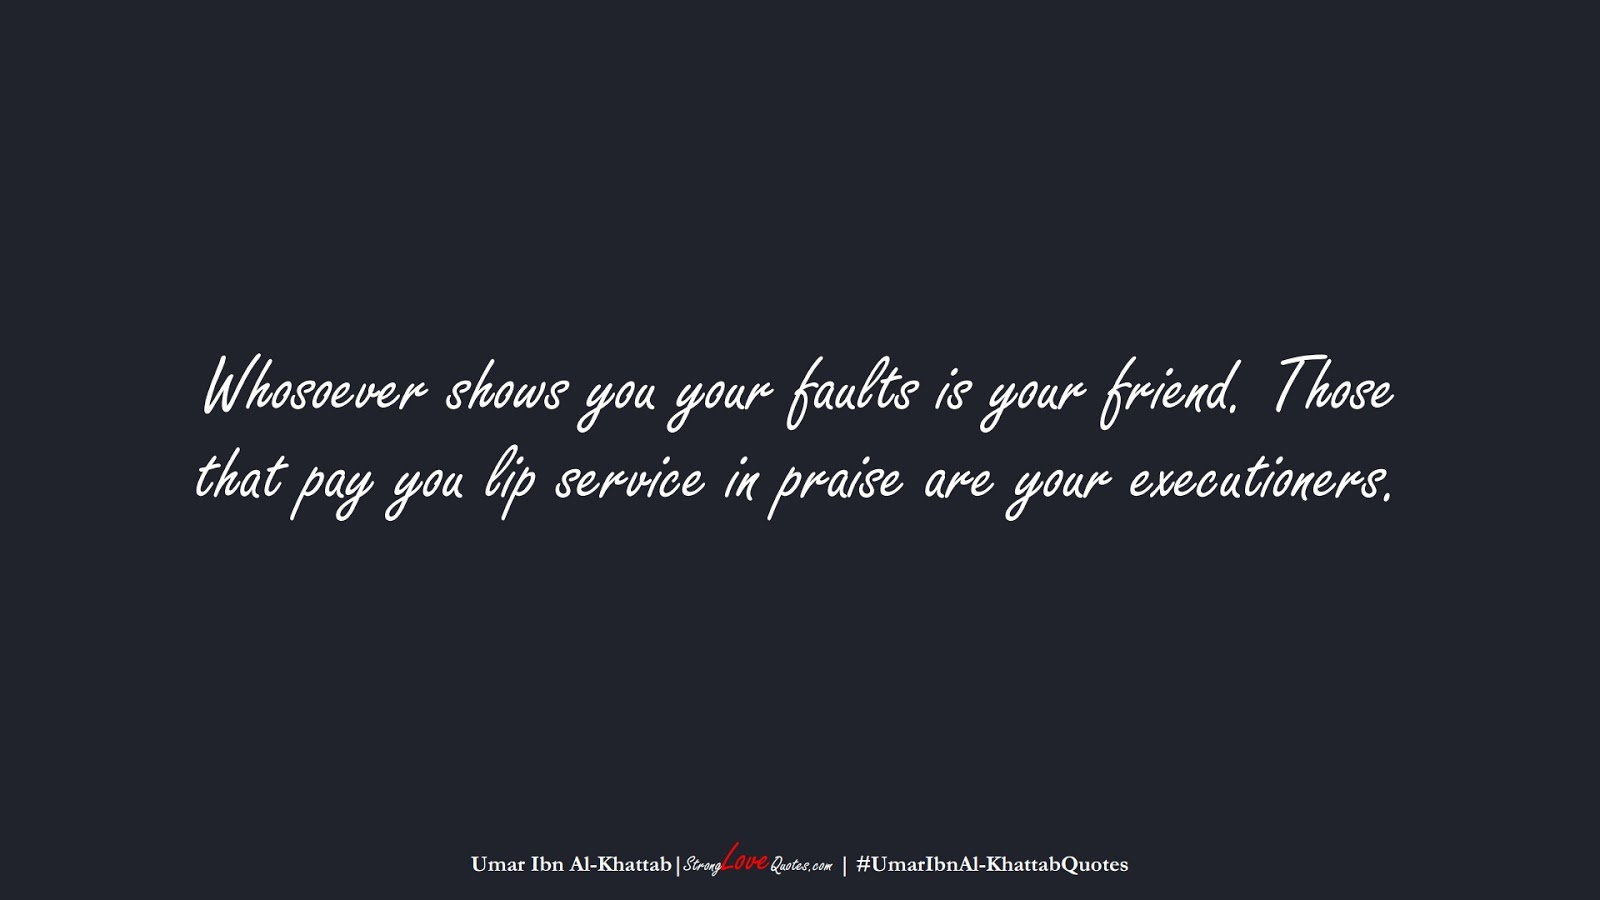 Whosoever shows you your faults is your friend. Those that pay you lip service in praise are your executioners. (Umar Ibn Al-Khattab);  #UmarIbnAl-KhattabQuotes